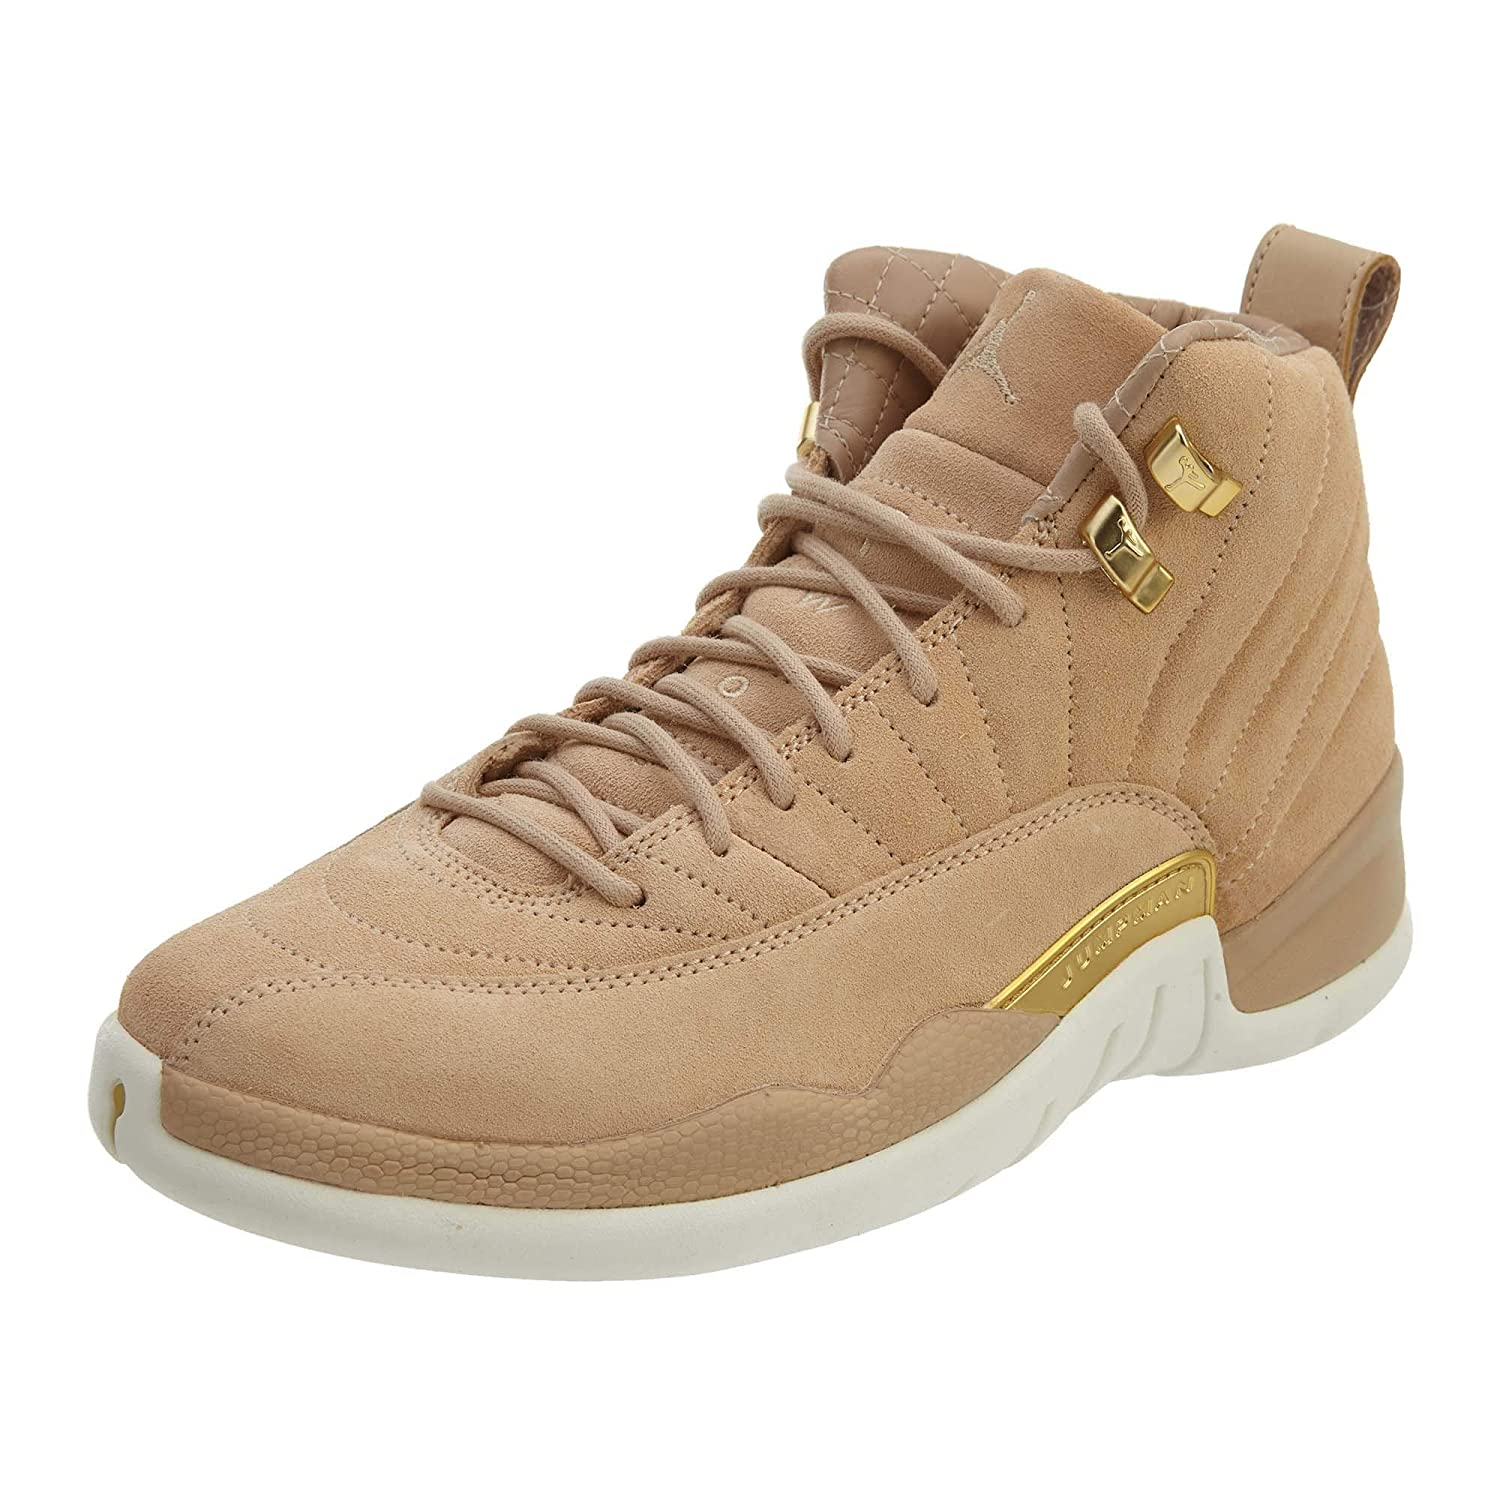 size 40 5b7c4 d89ce Jordan Womens Air 12 Retro High Top Sneakers Basketball Shoes